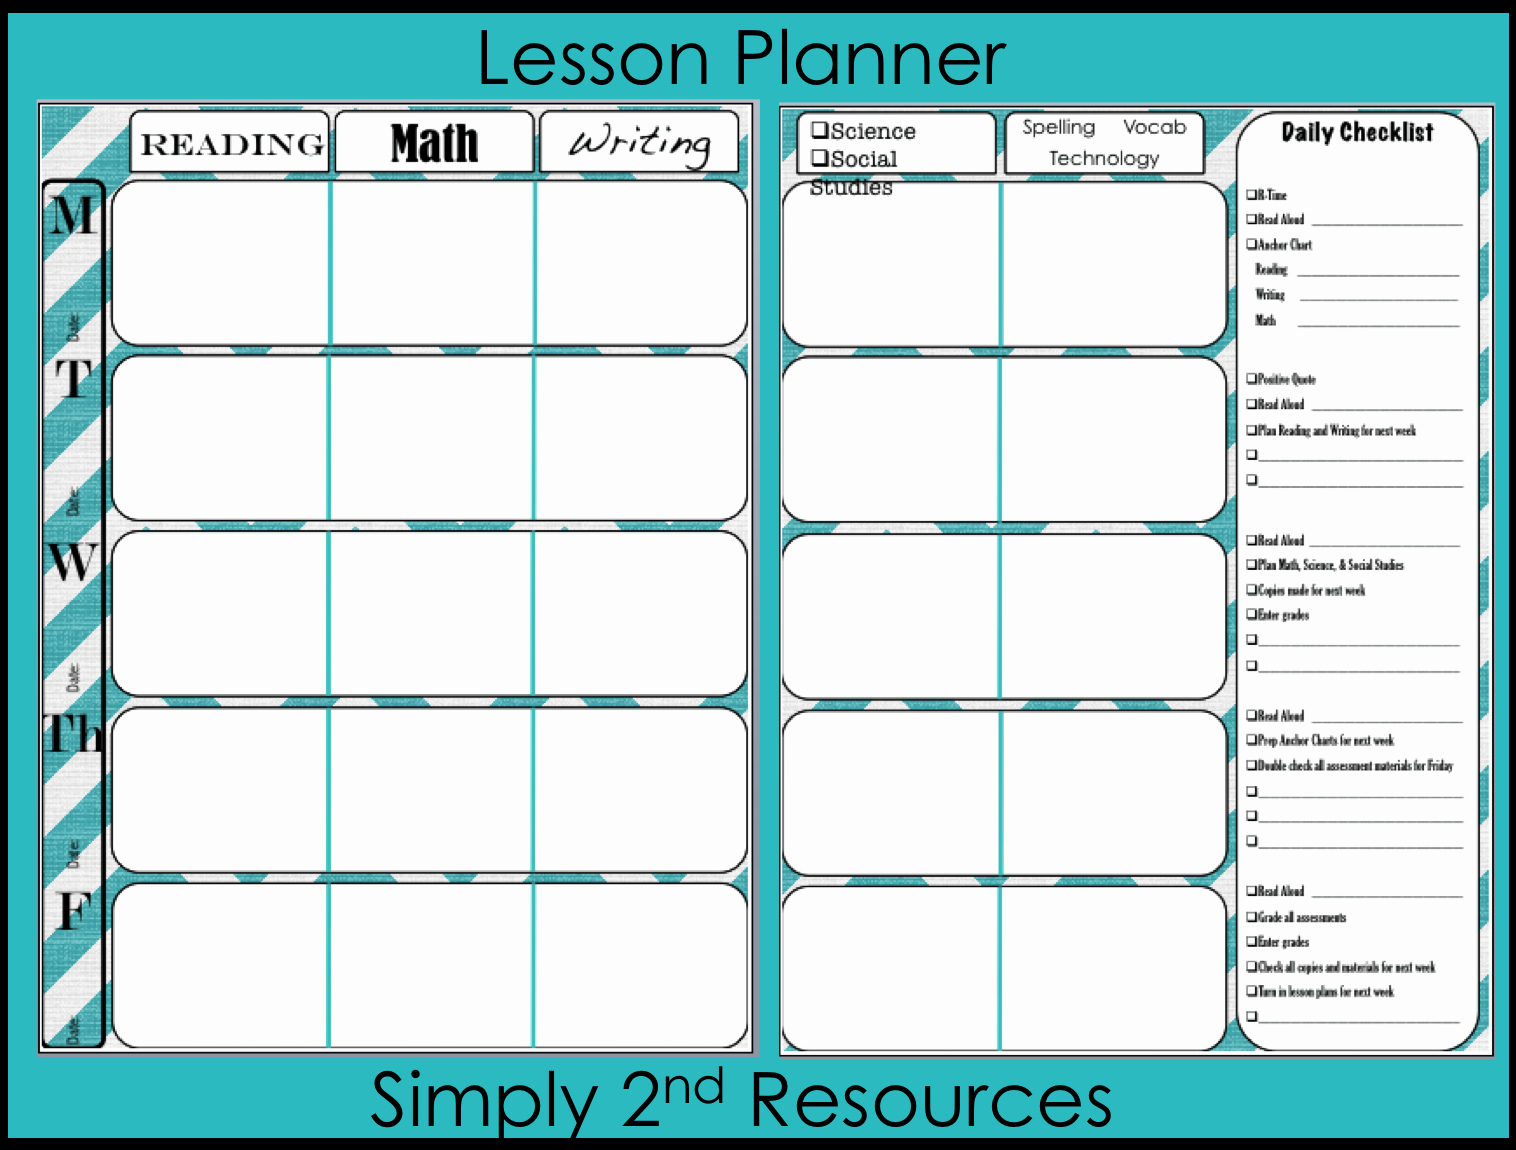 Free Printable Lesson Plan Template Elegant Simply 2nd Resources Lesson Plan Template so Excited to